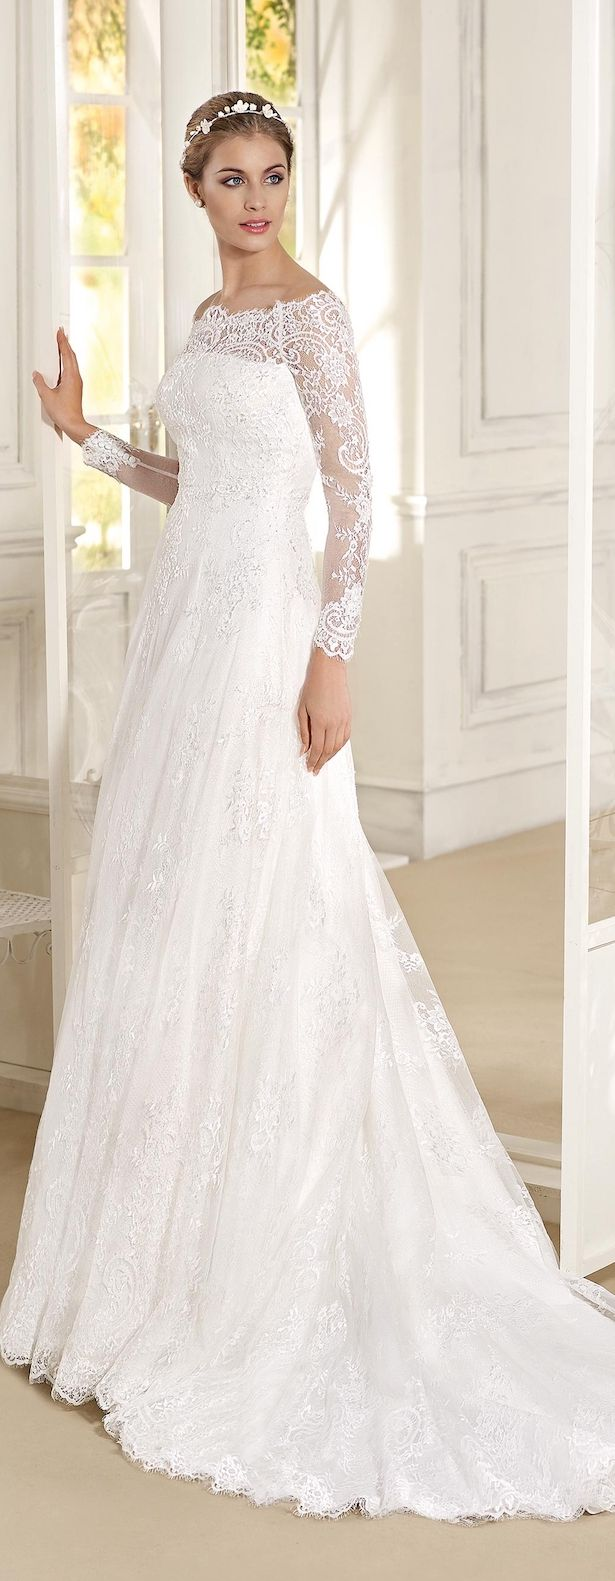 Long sleeve Lace off the shoulder Wedding Dress by Fara Sposa 2017 Bridal Collection Designer: Fara Sposa SEE POST SEE GALLERY